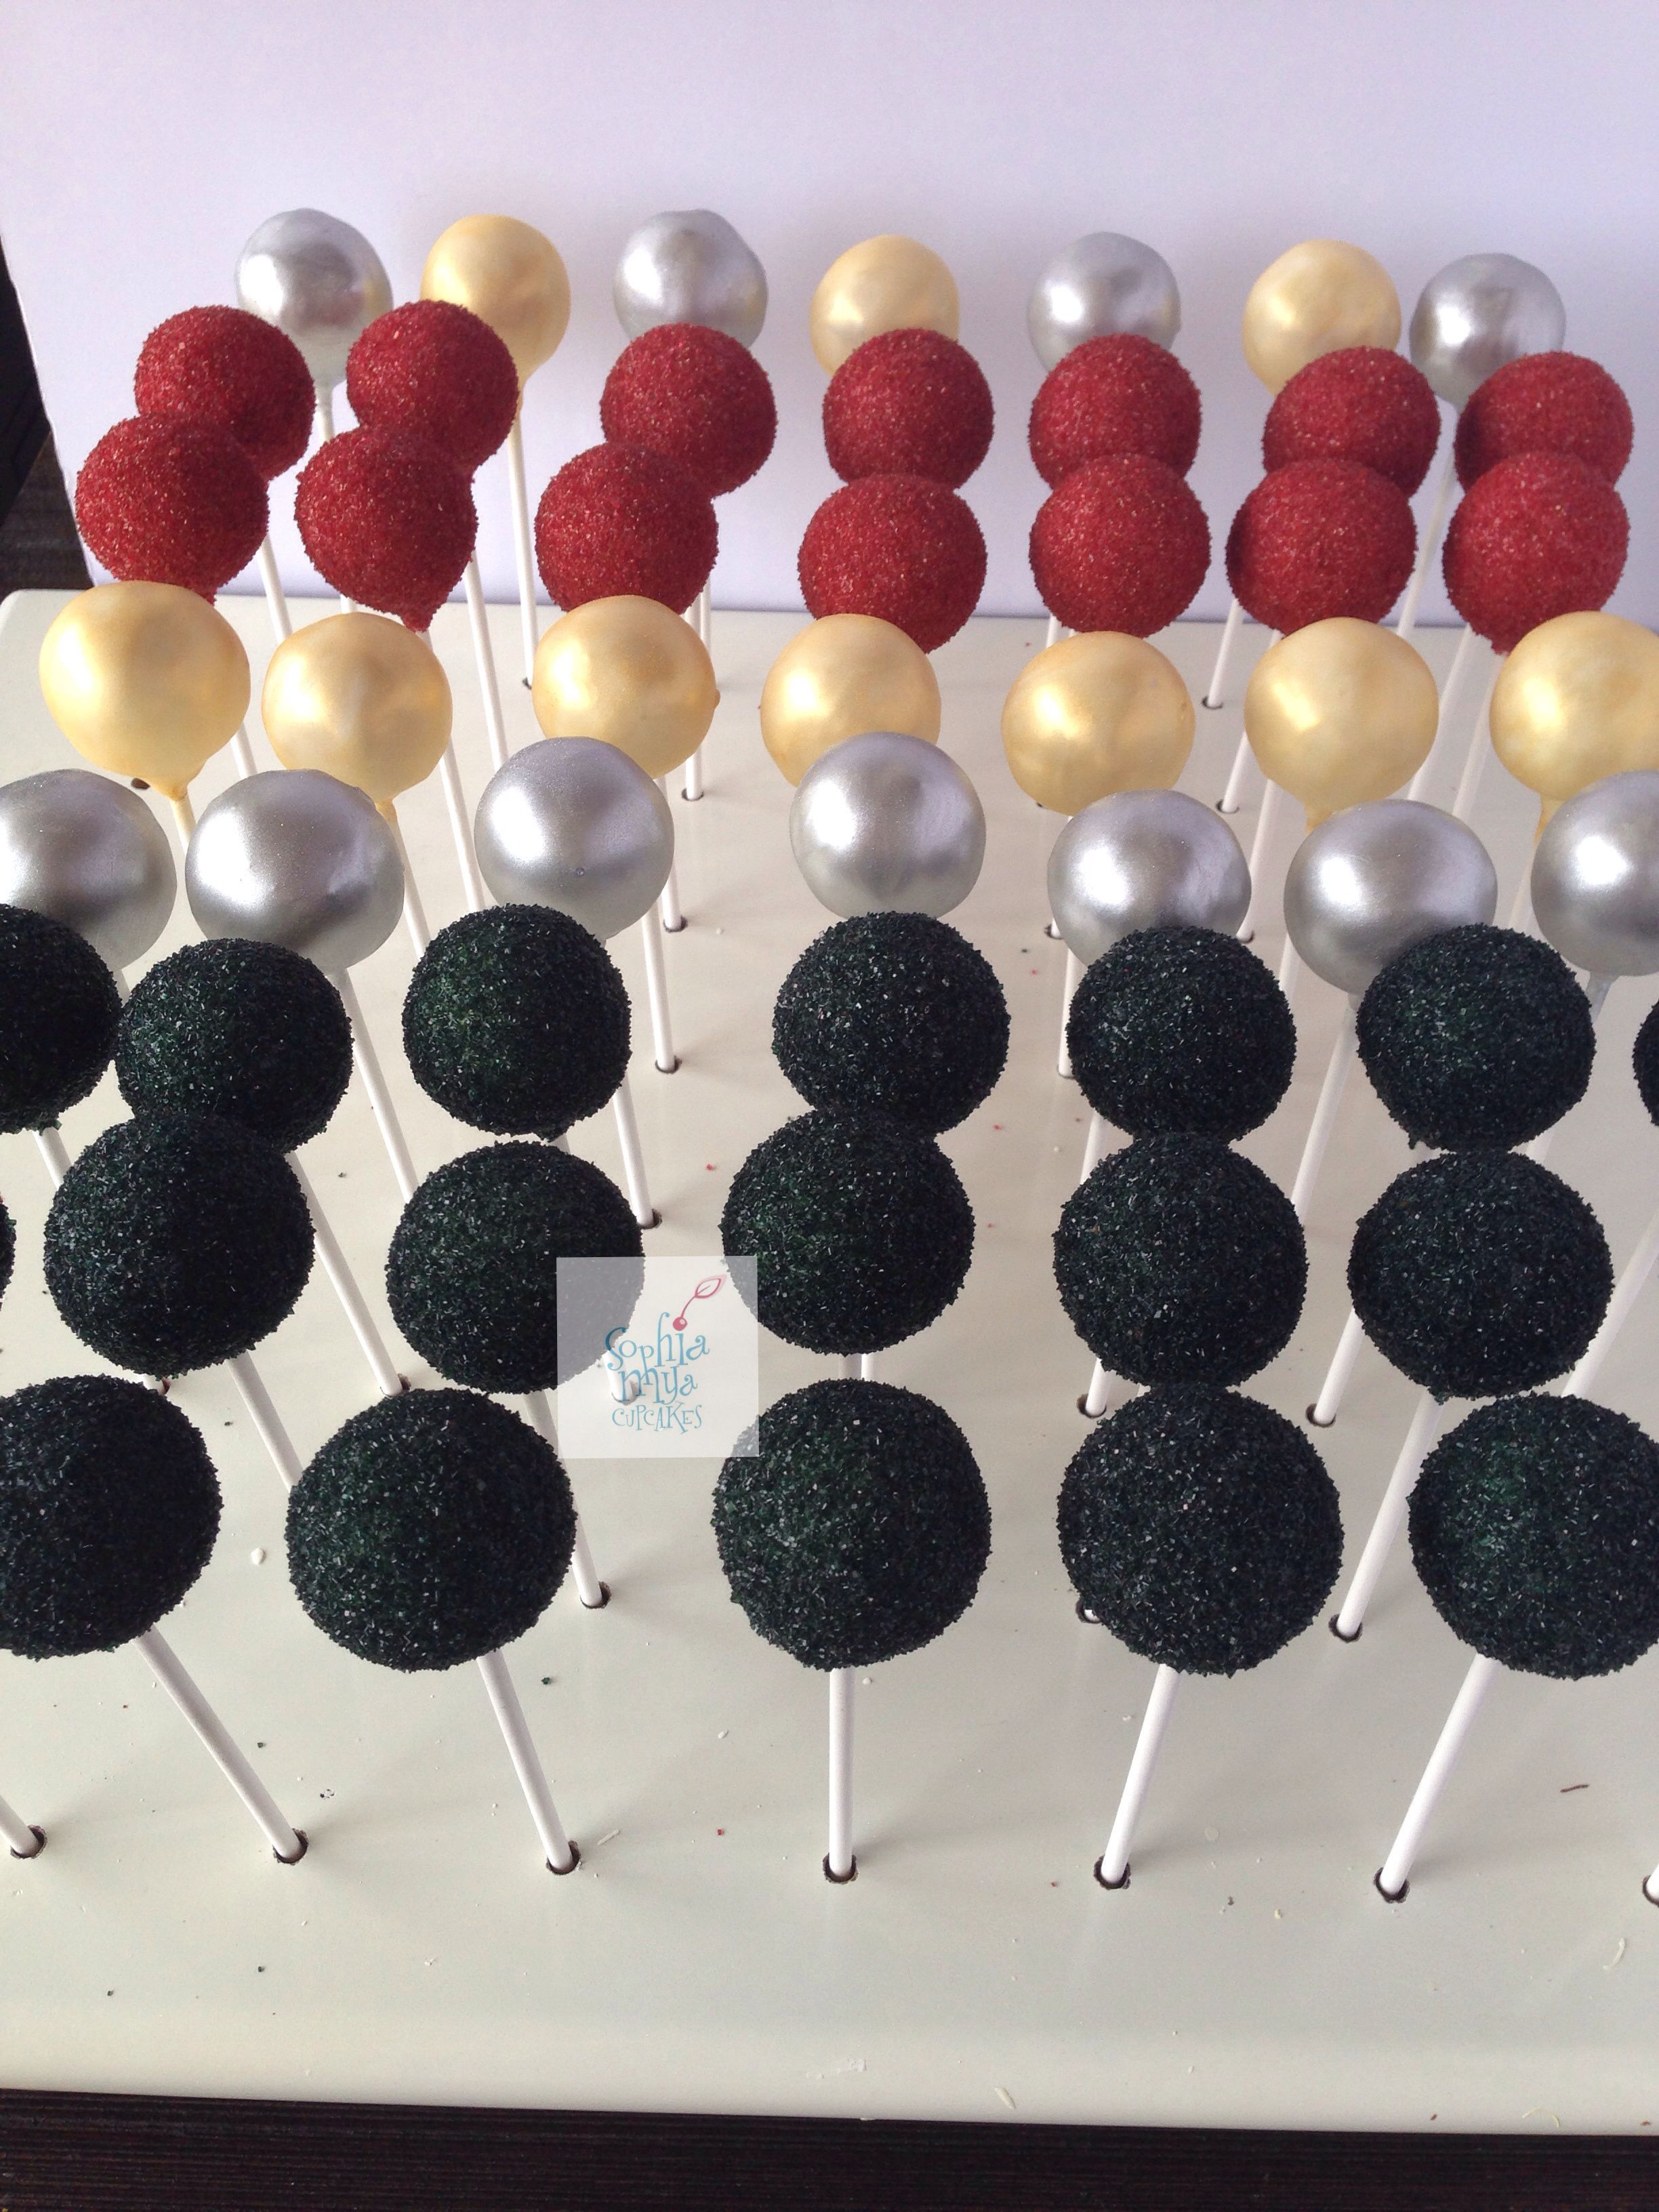 cake pop ideas wedding shower%0A covering letter for job applications